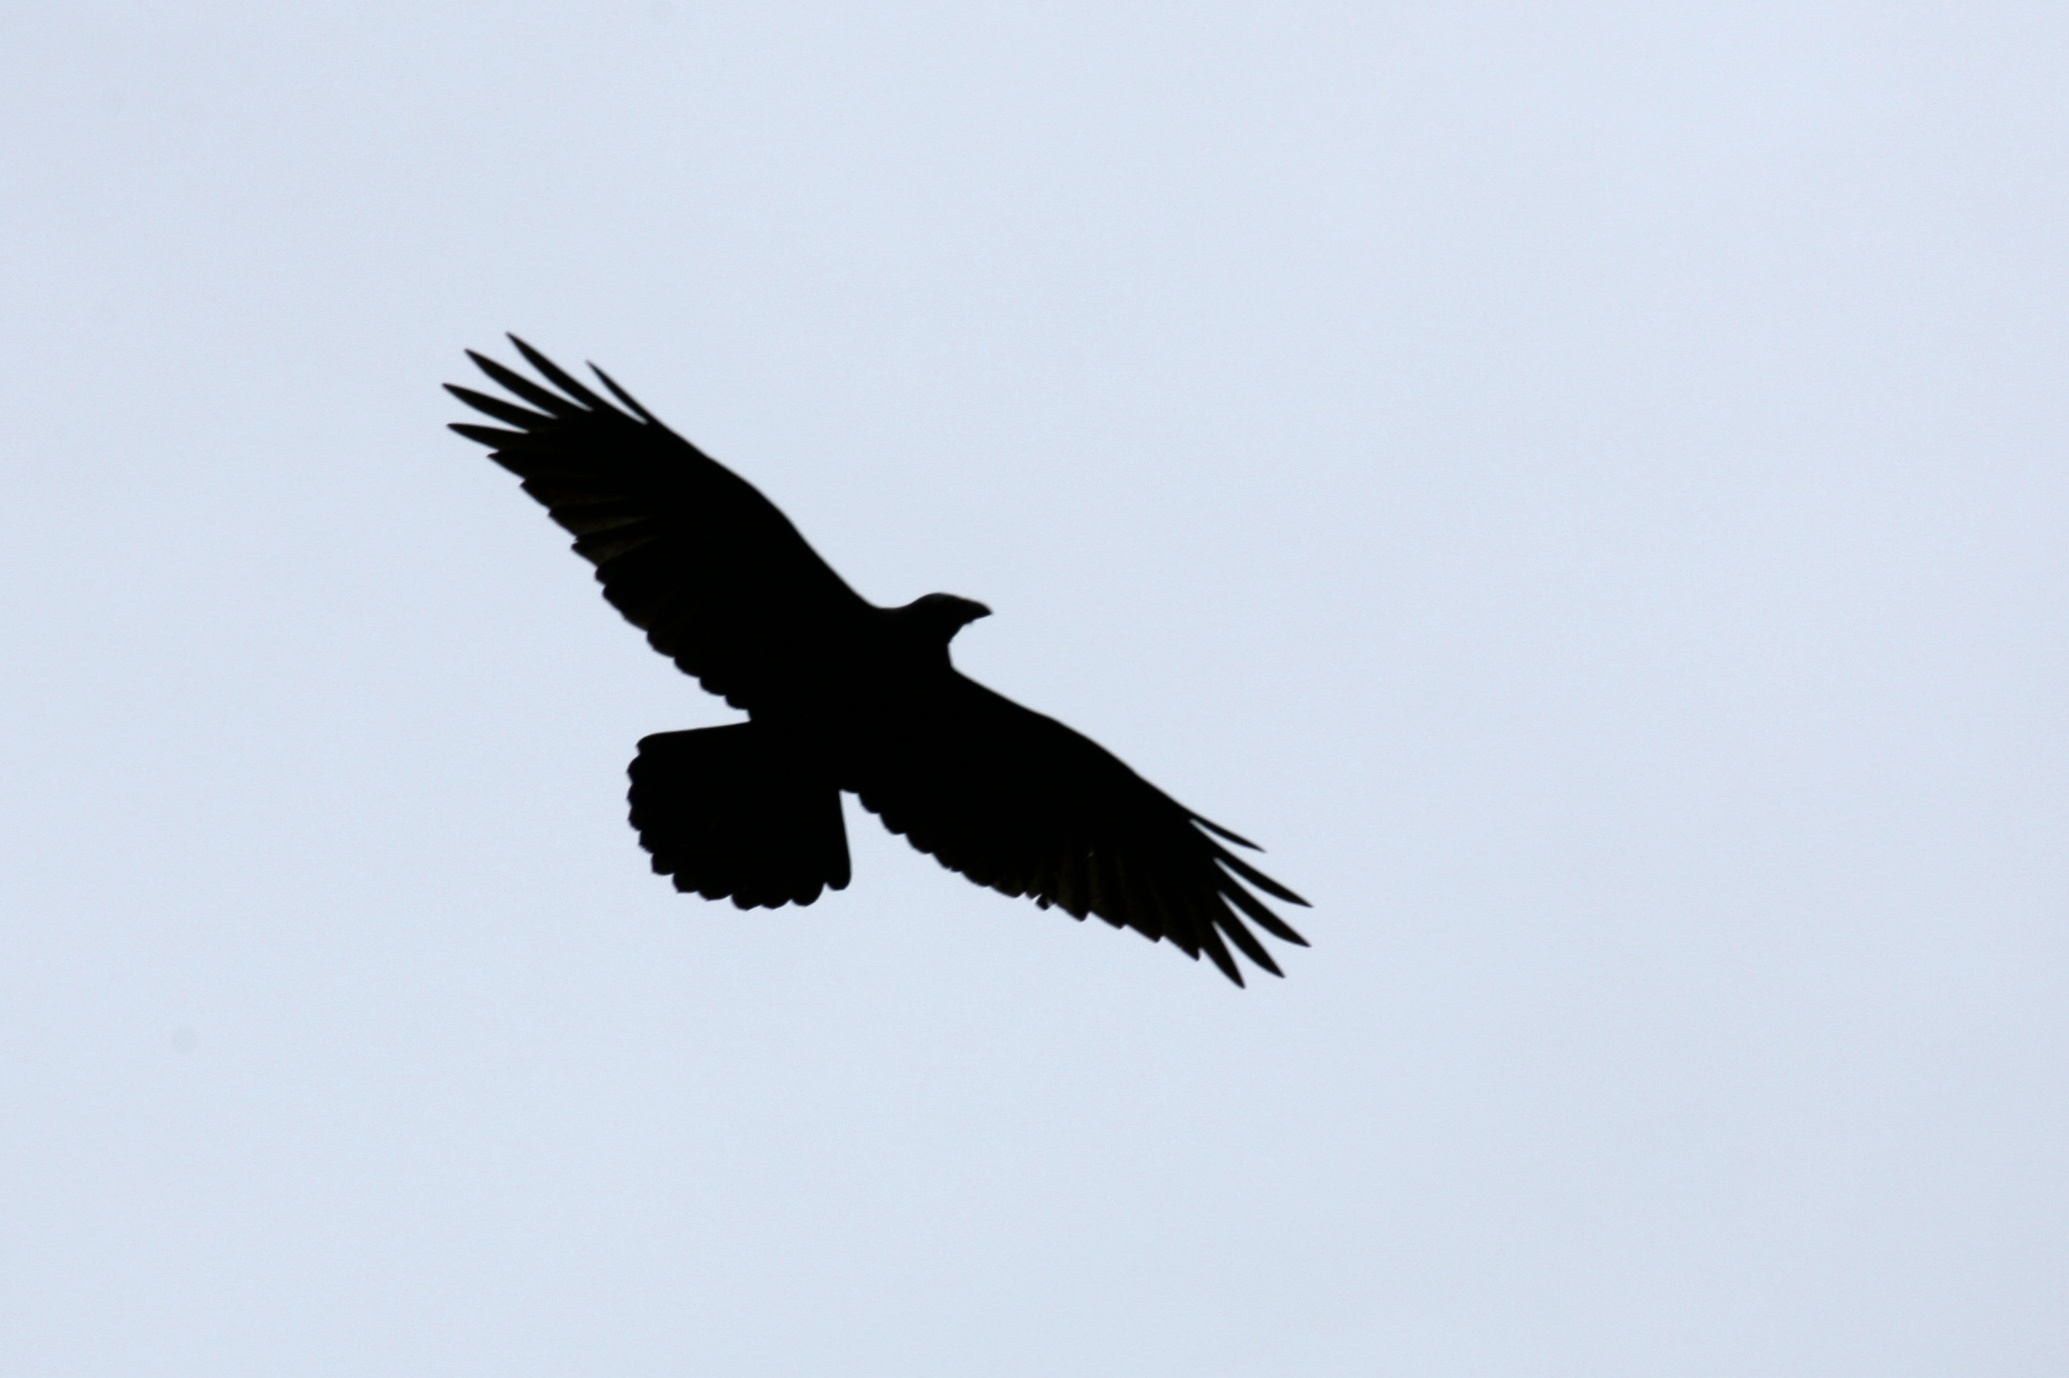 turkey vulture silouette author lucke charlie